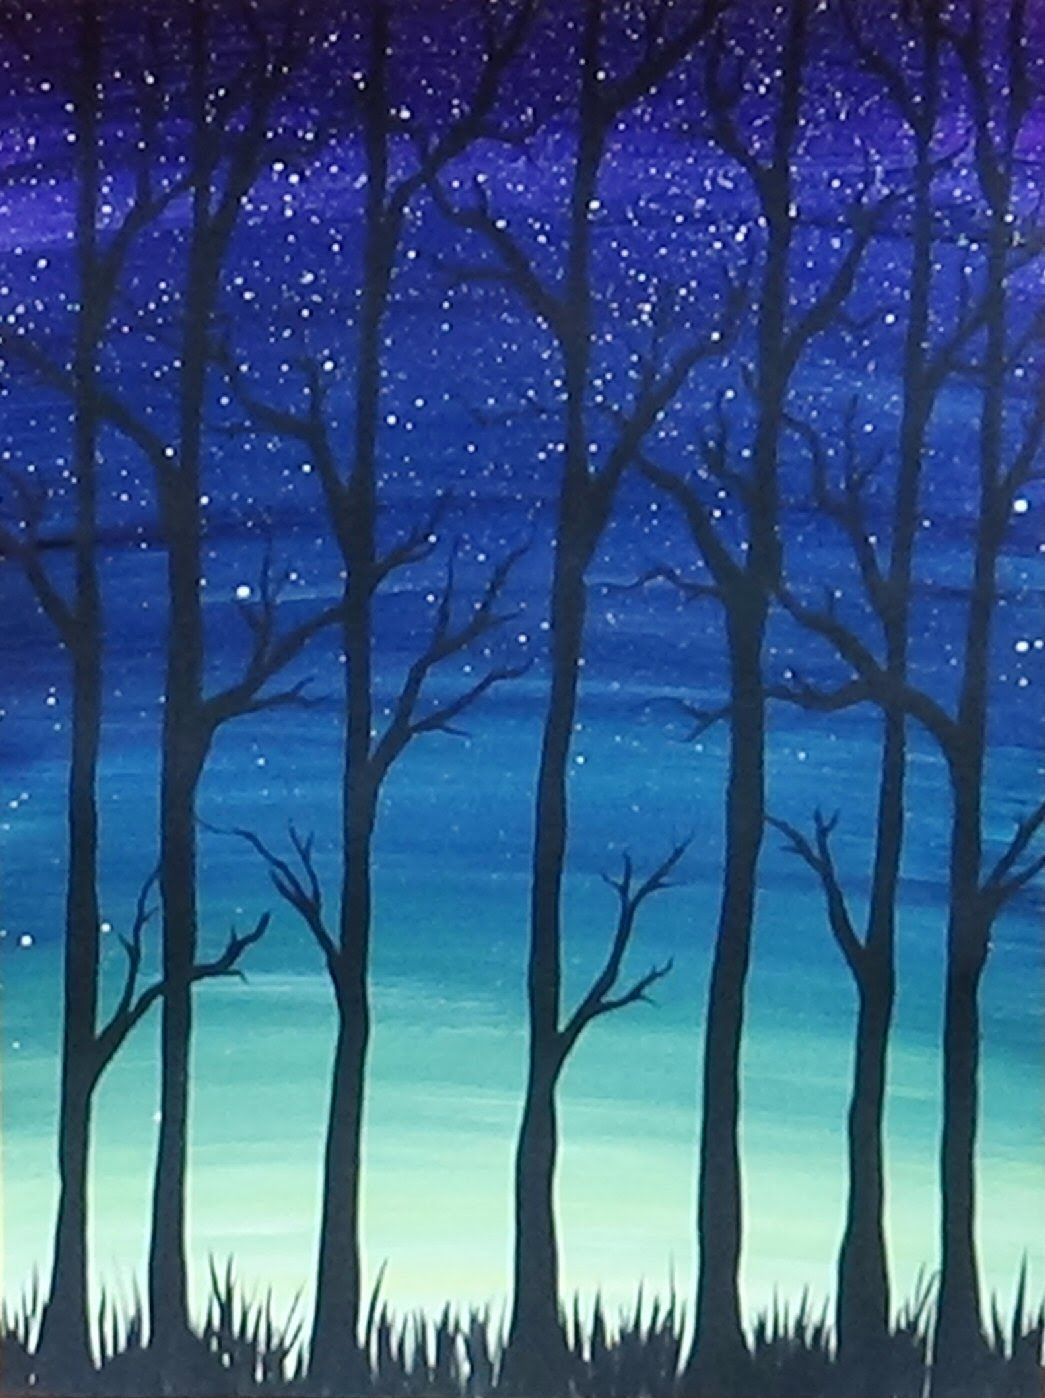 Acrylic Painting Simple Trees Silhouette Acrylicpainting